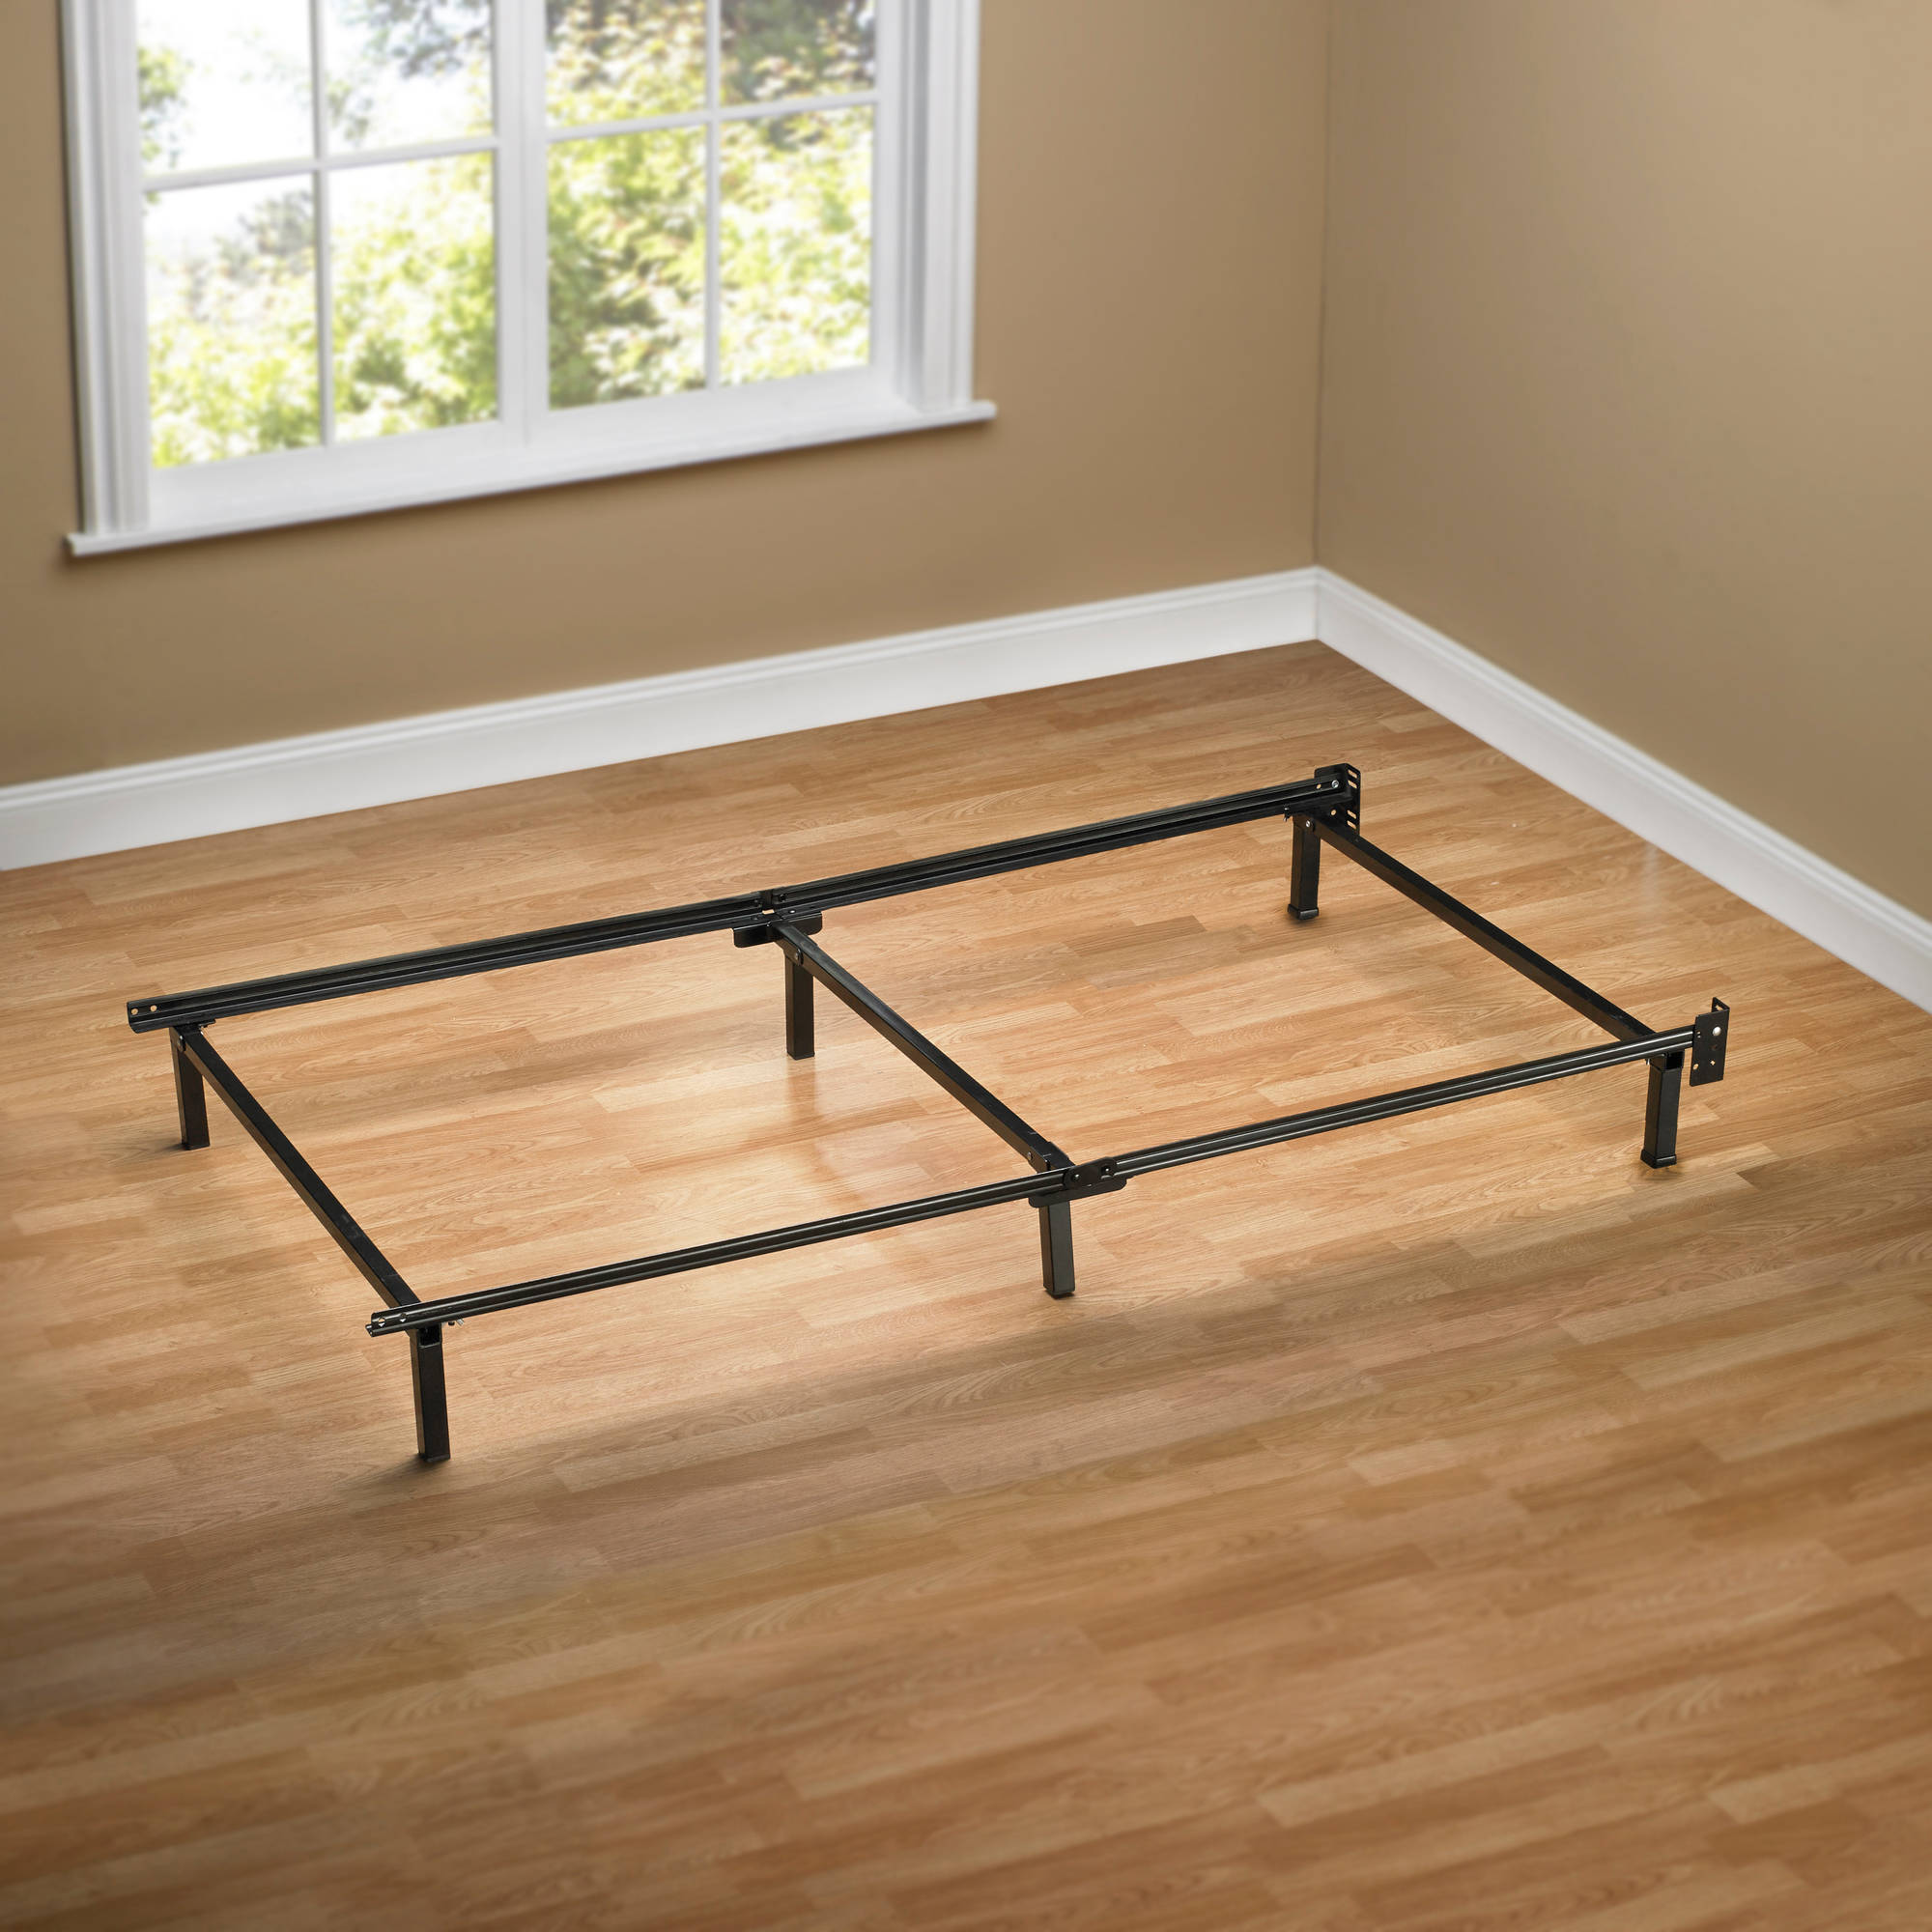 Best Walmart Bed Frames Collection